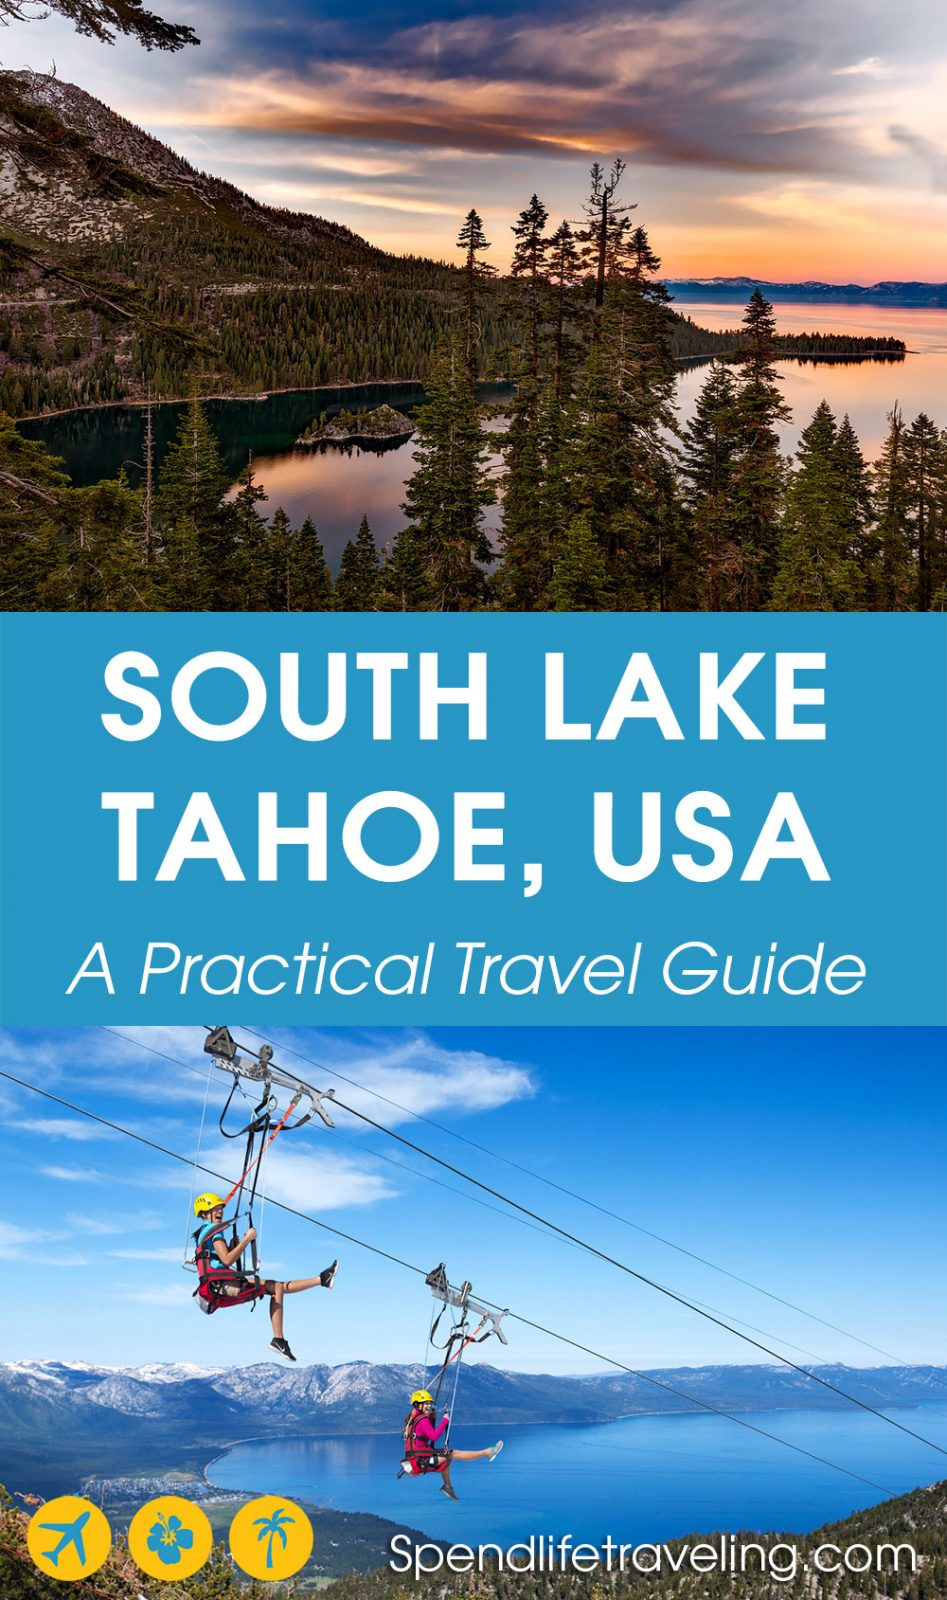 South Lake Tahoe is Lake Tahoe's most popular town. It is perfect for a short trip any time of year. Check out what to do, where to eat & drink and where to stay.